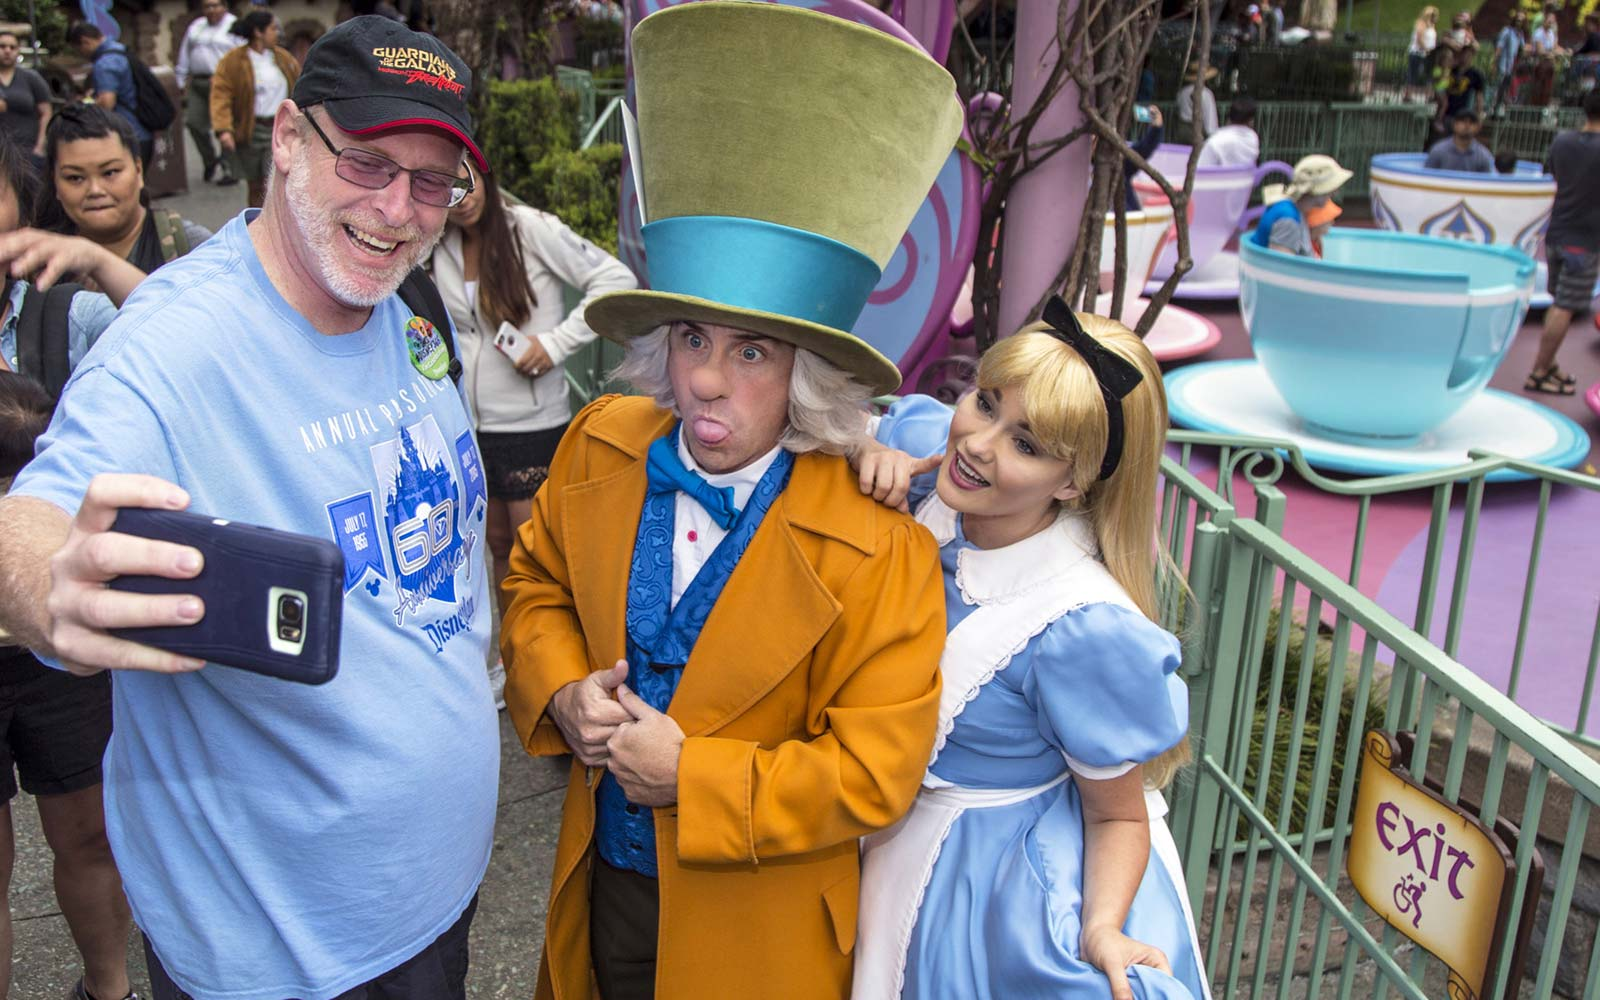 This Man Has Been to Disneyland Every Day for the Last 2,000 Days